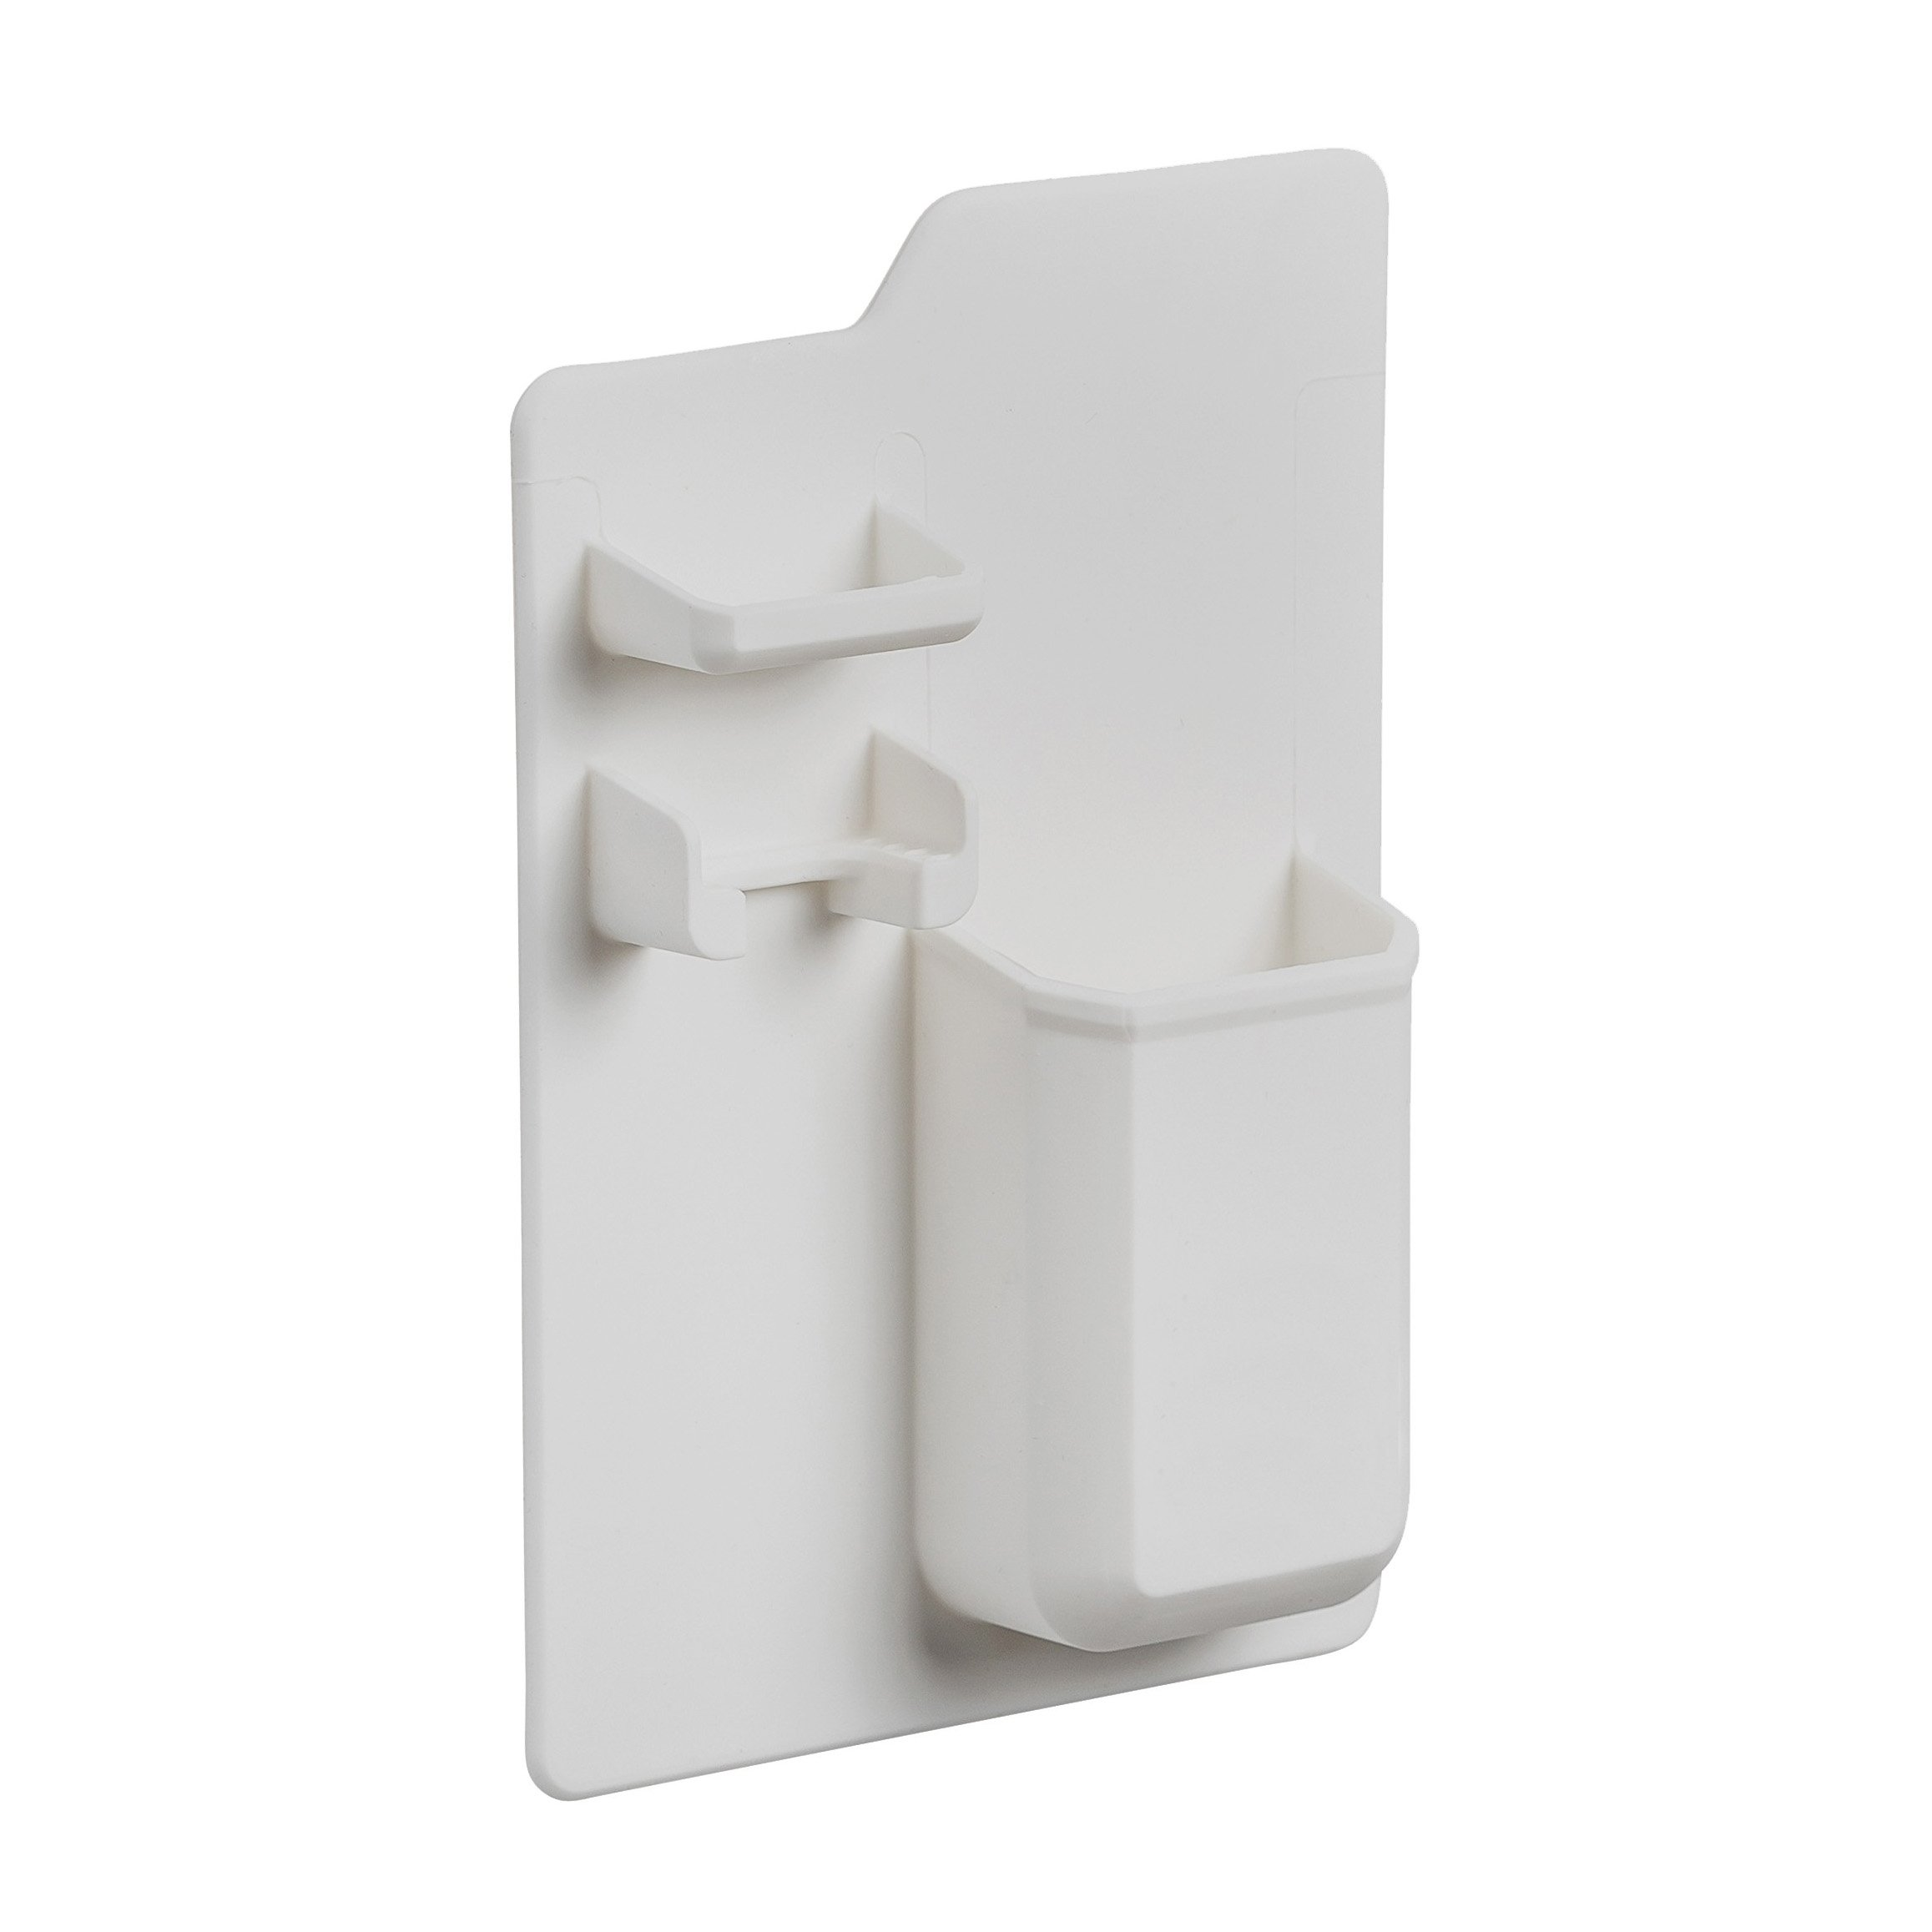 J-MART Mighty Toothbrush Holder 1031 Gray